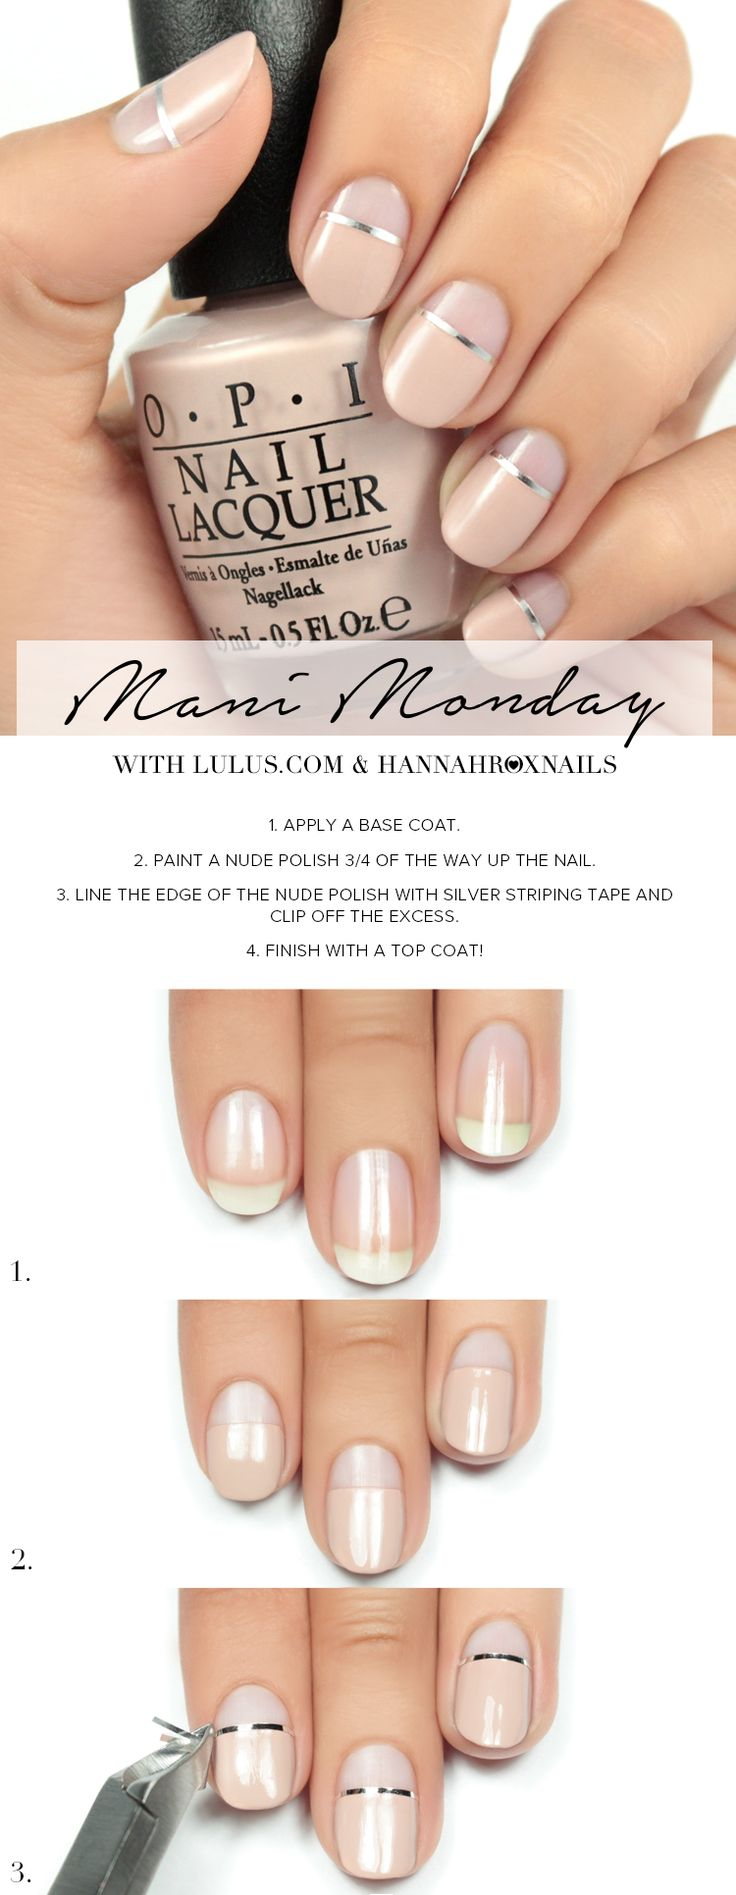 Pattern nail art designs fancy nail art for prom simple nail art lines - Mani Monday Nude And Silver Nail Tutorial Striped Nailsstripe Nail Art Mondaysnail